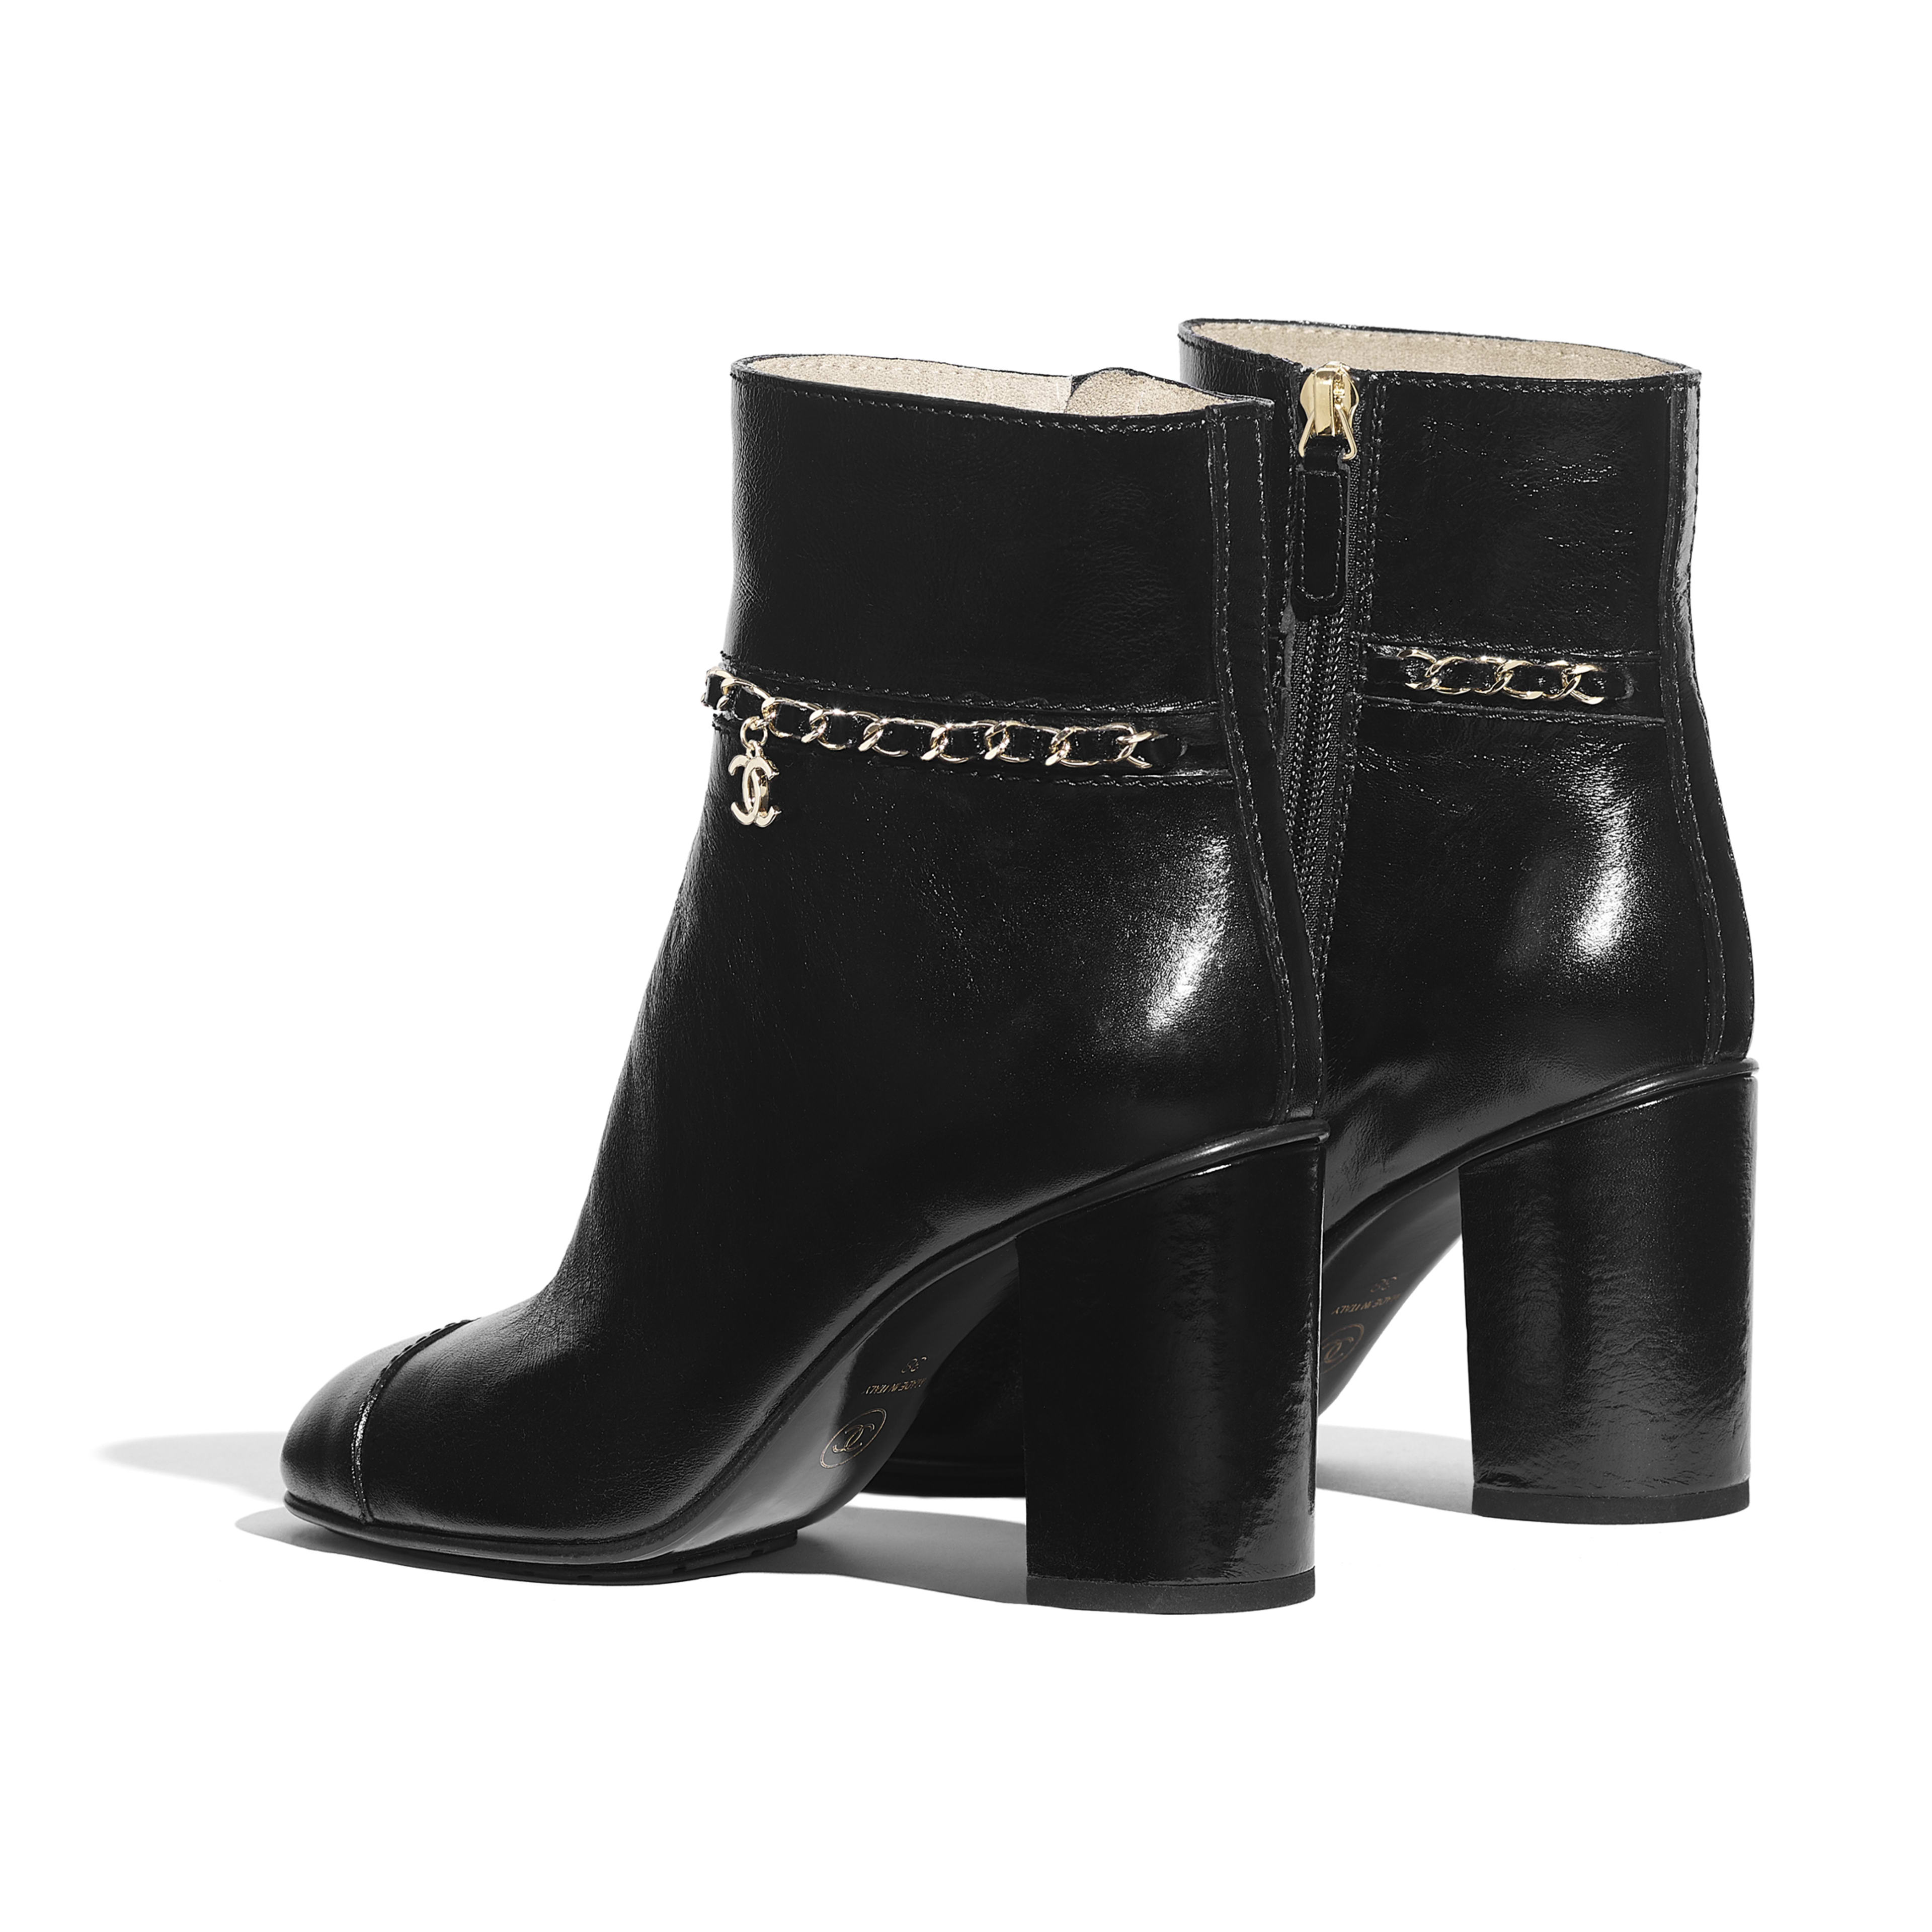 Ankle Boots - Black - Calfskin - Other view - see full sized version